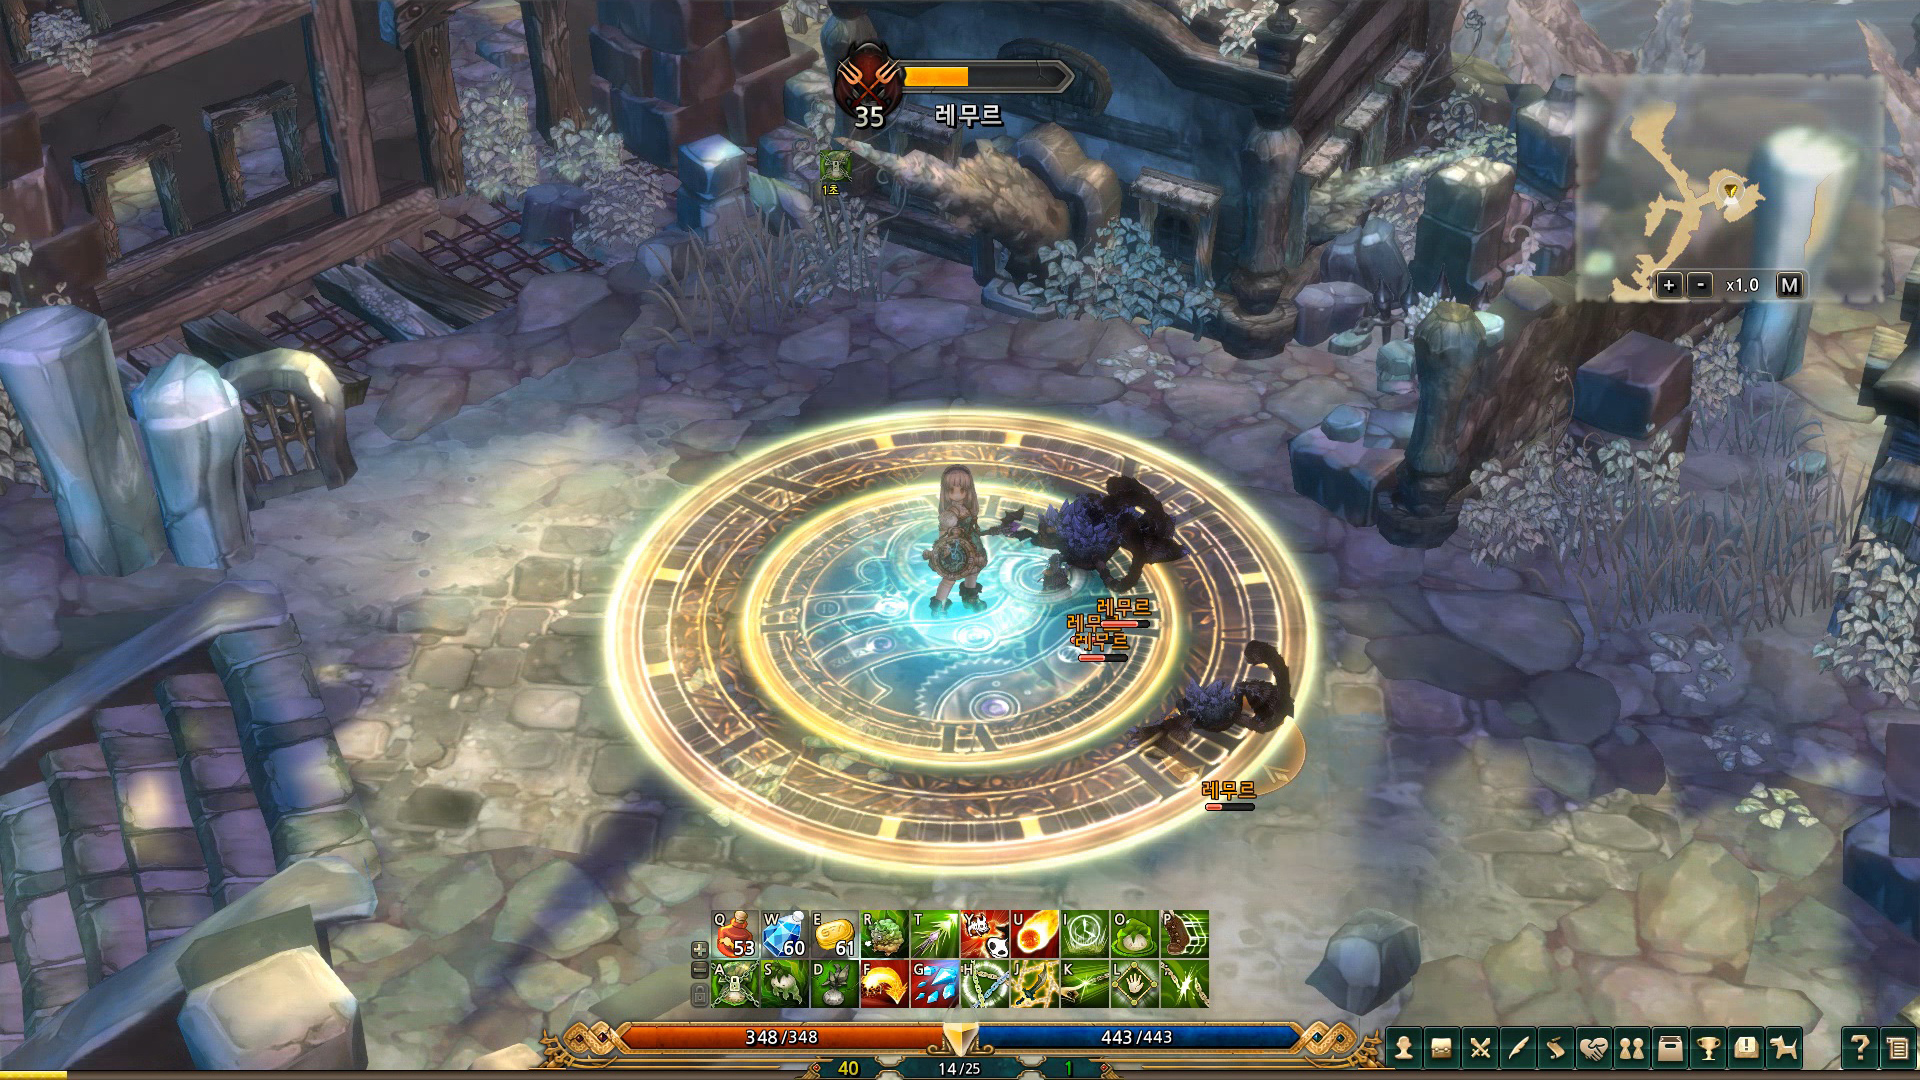 Tree of savior 10 interesting facts about this awesome mmorpg